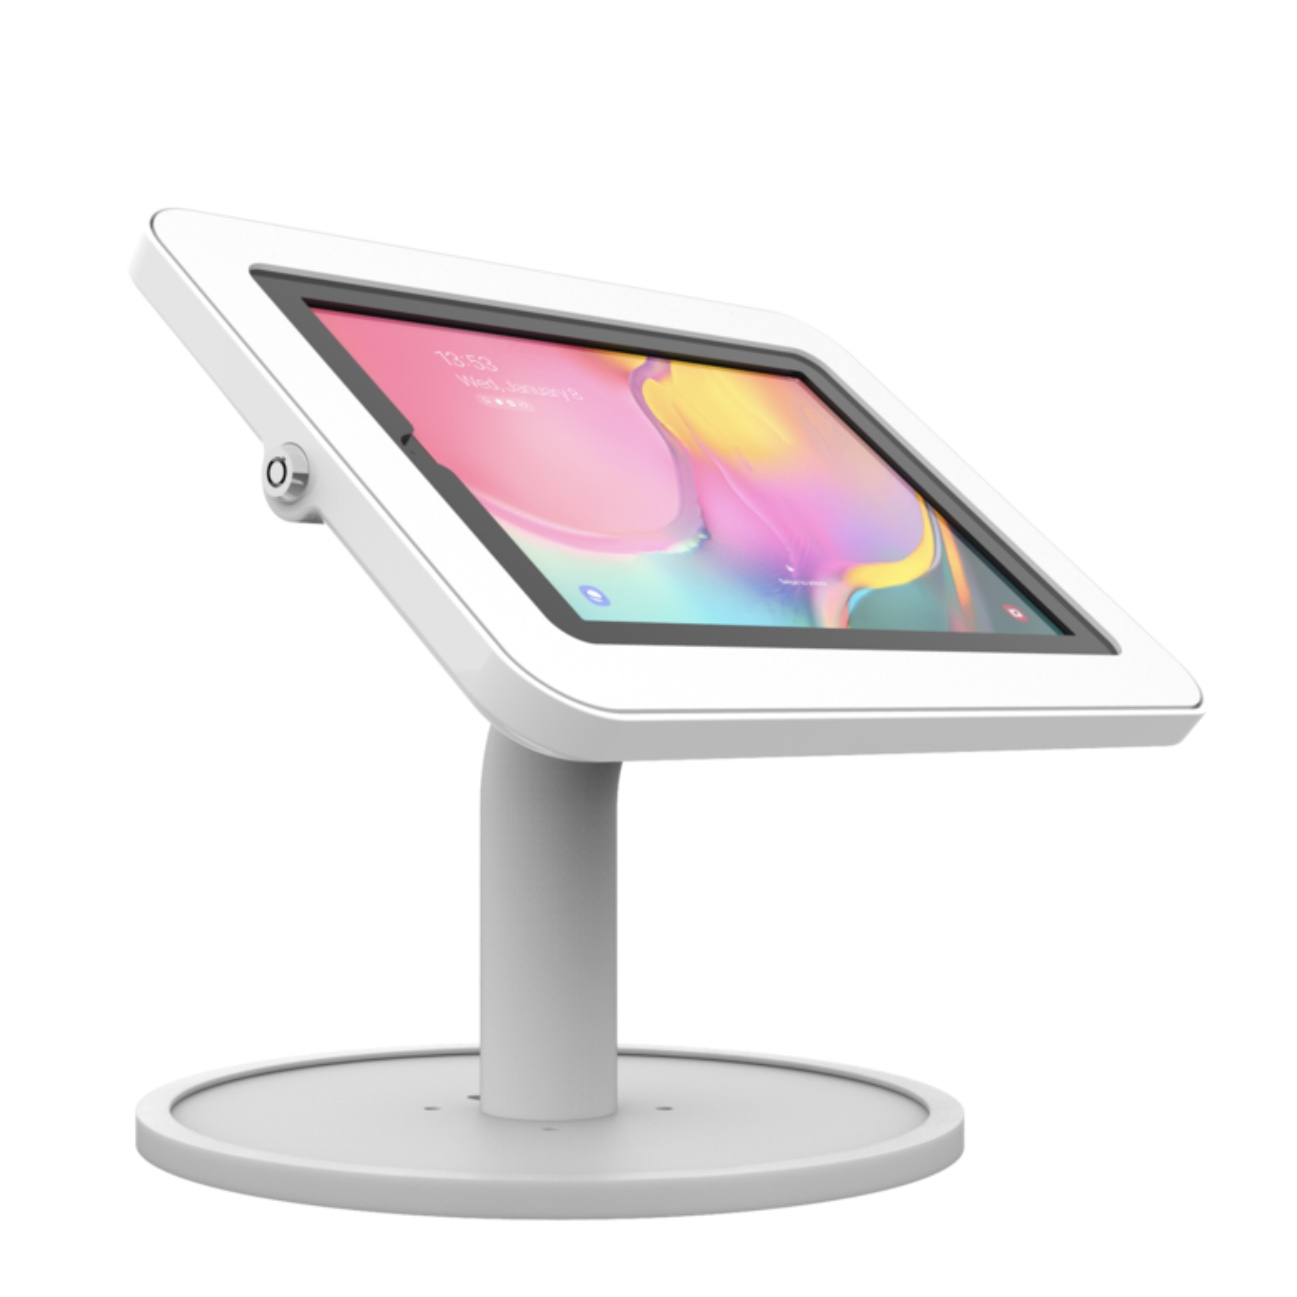 Borne de table securisee Galaxy TAB A 2019 10.1 T510 Base Light BLANC